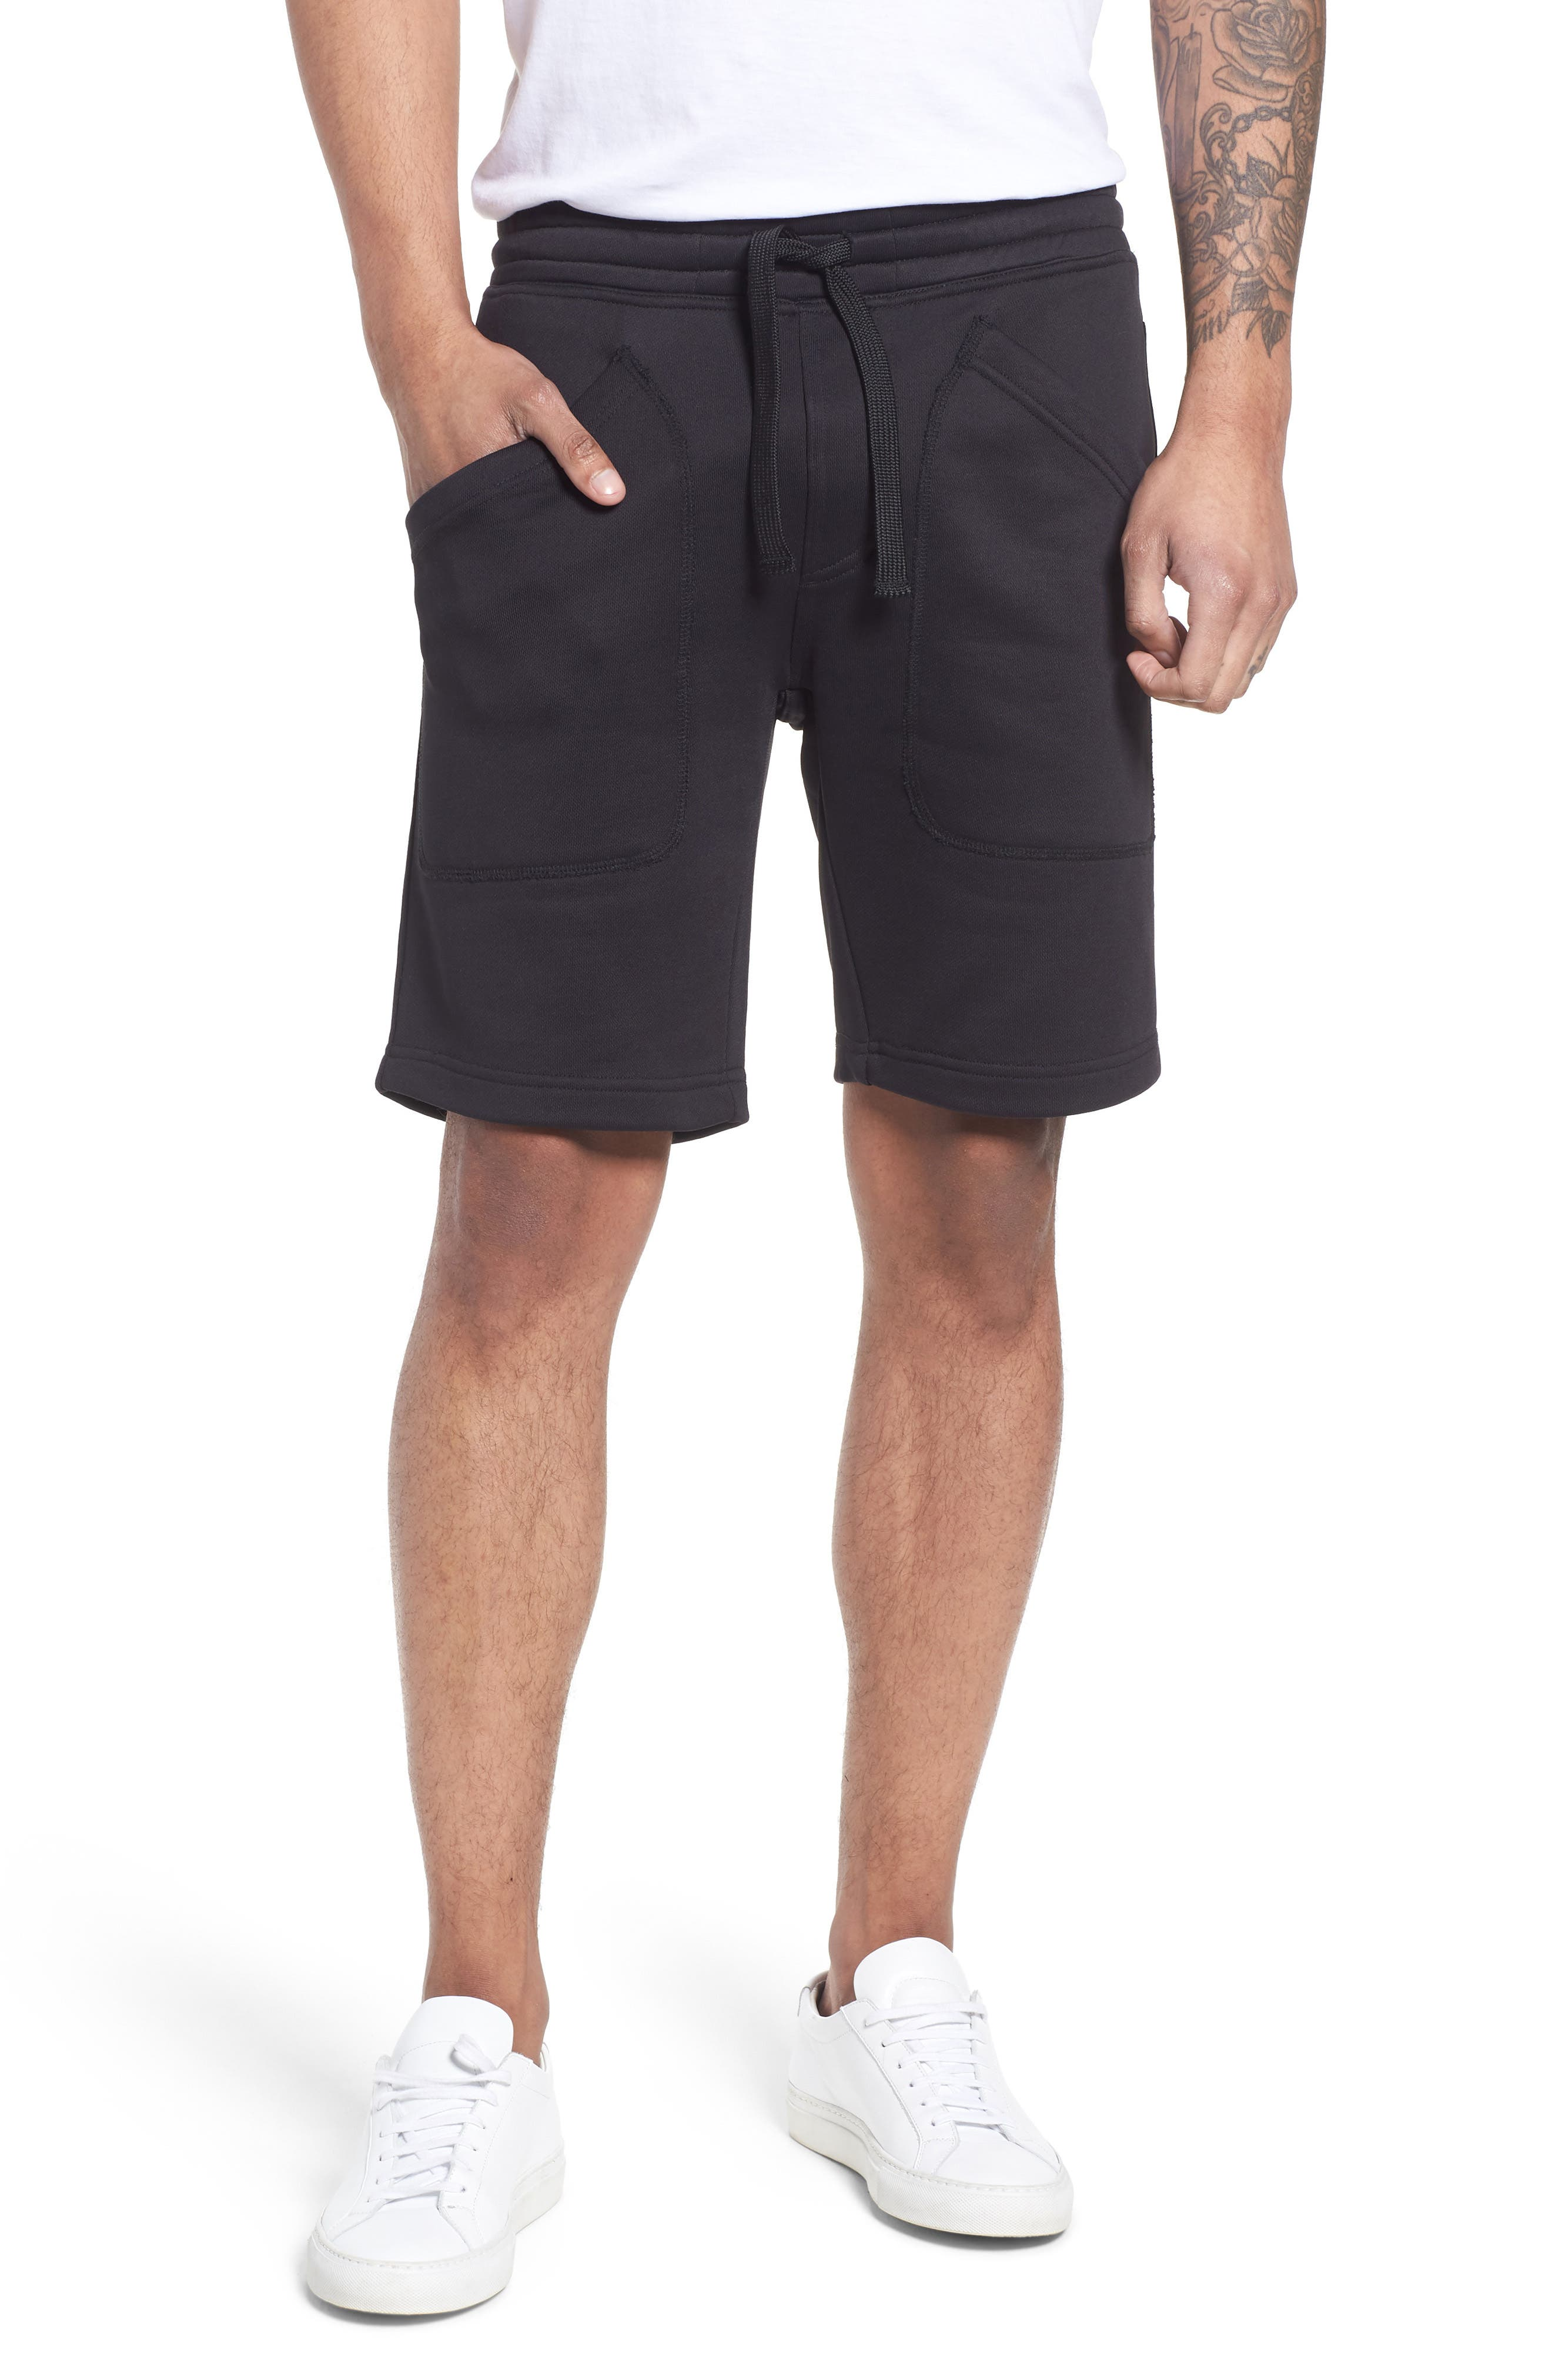 TWENTYMETRICTONS Lux French Terry Shorts